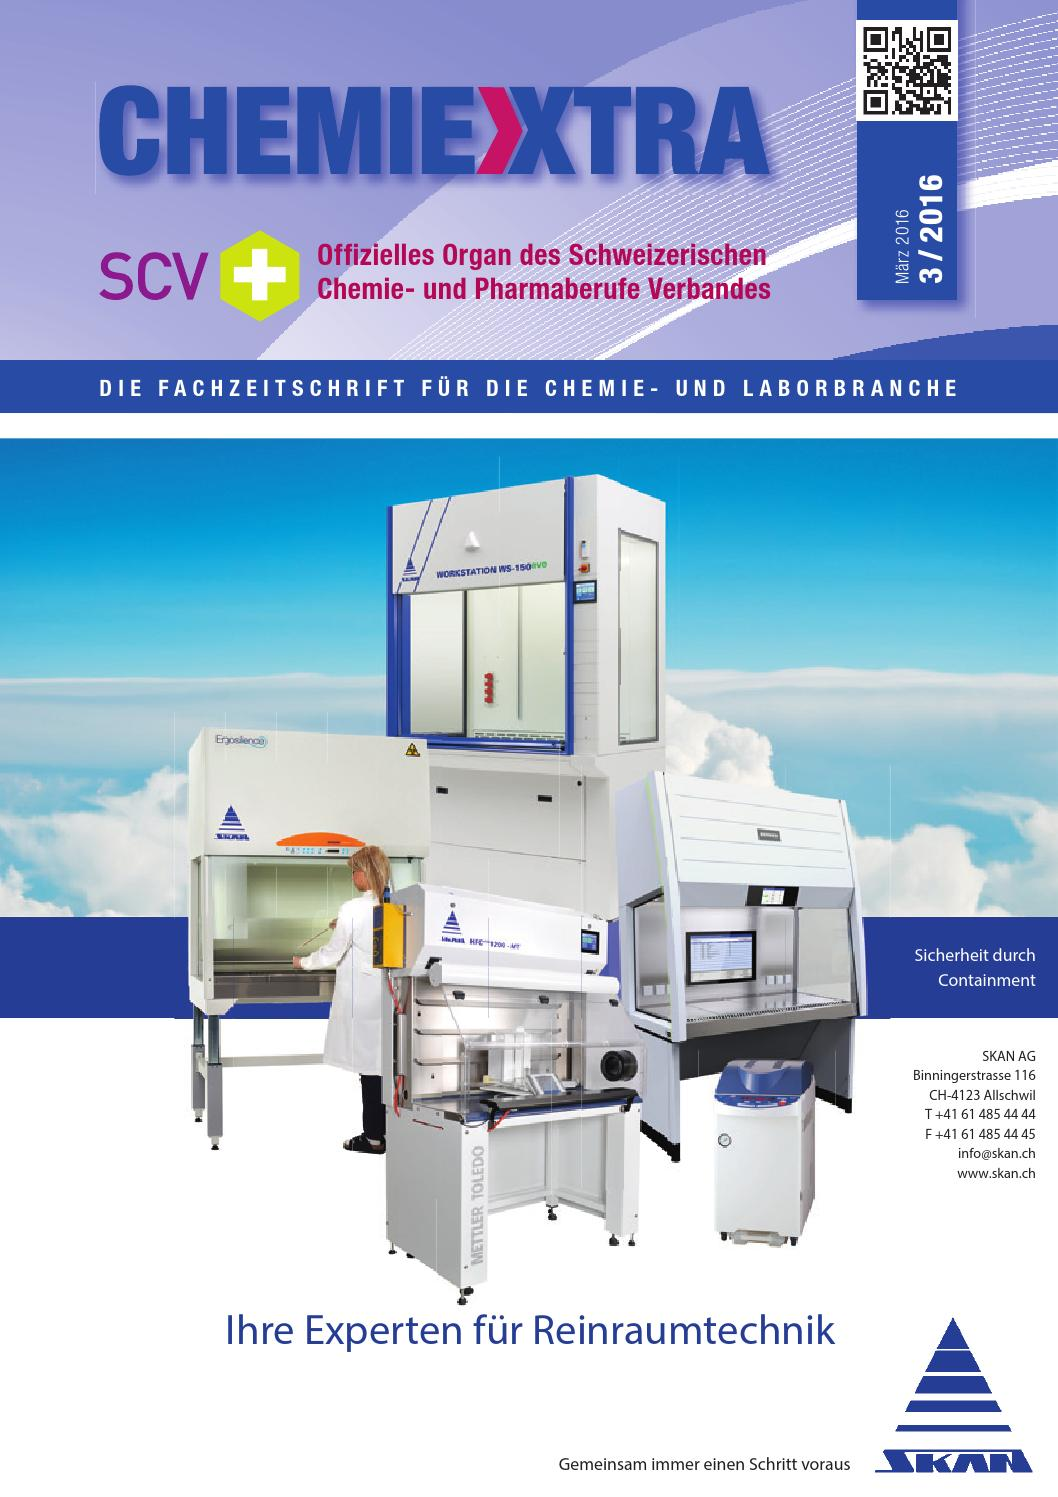 Chemiextra cx 3 2016 low by SIGWERB GmbH - issuu